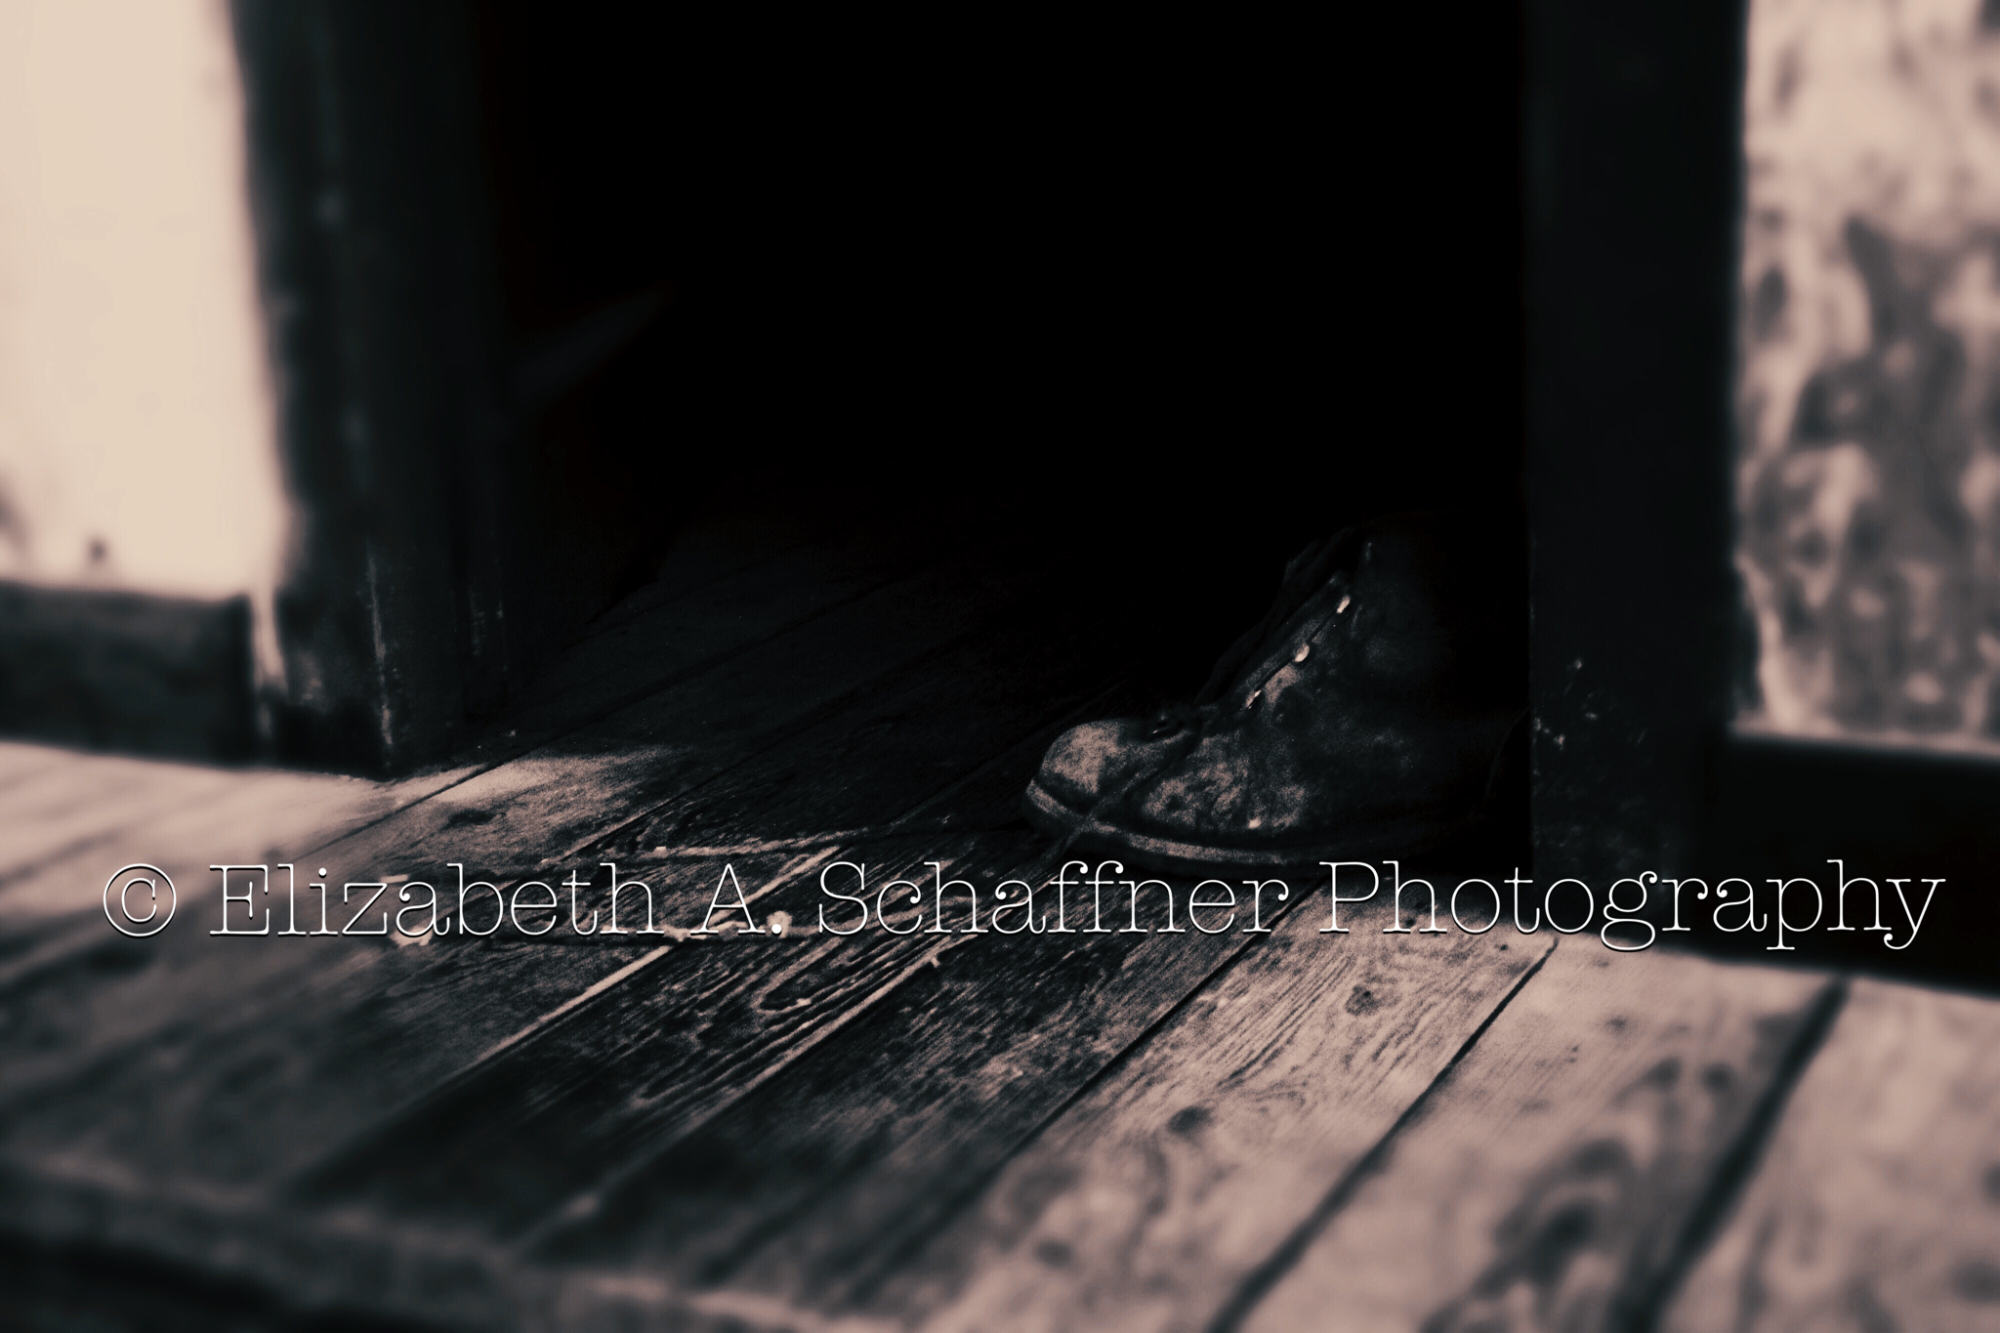 The Boot #5 by Elizabeth A. Schaffner Photography  #Still #Life #Photography #BlackandWhite #Boots #Old #Shoes